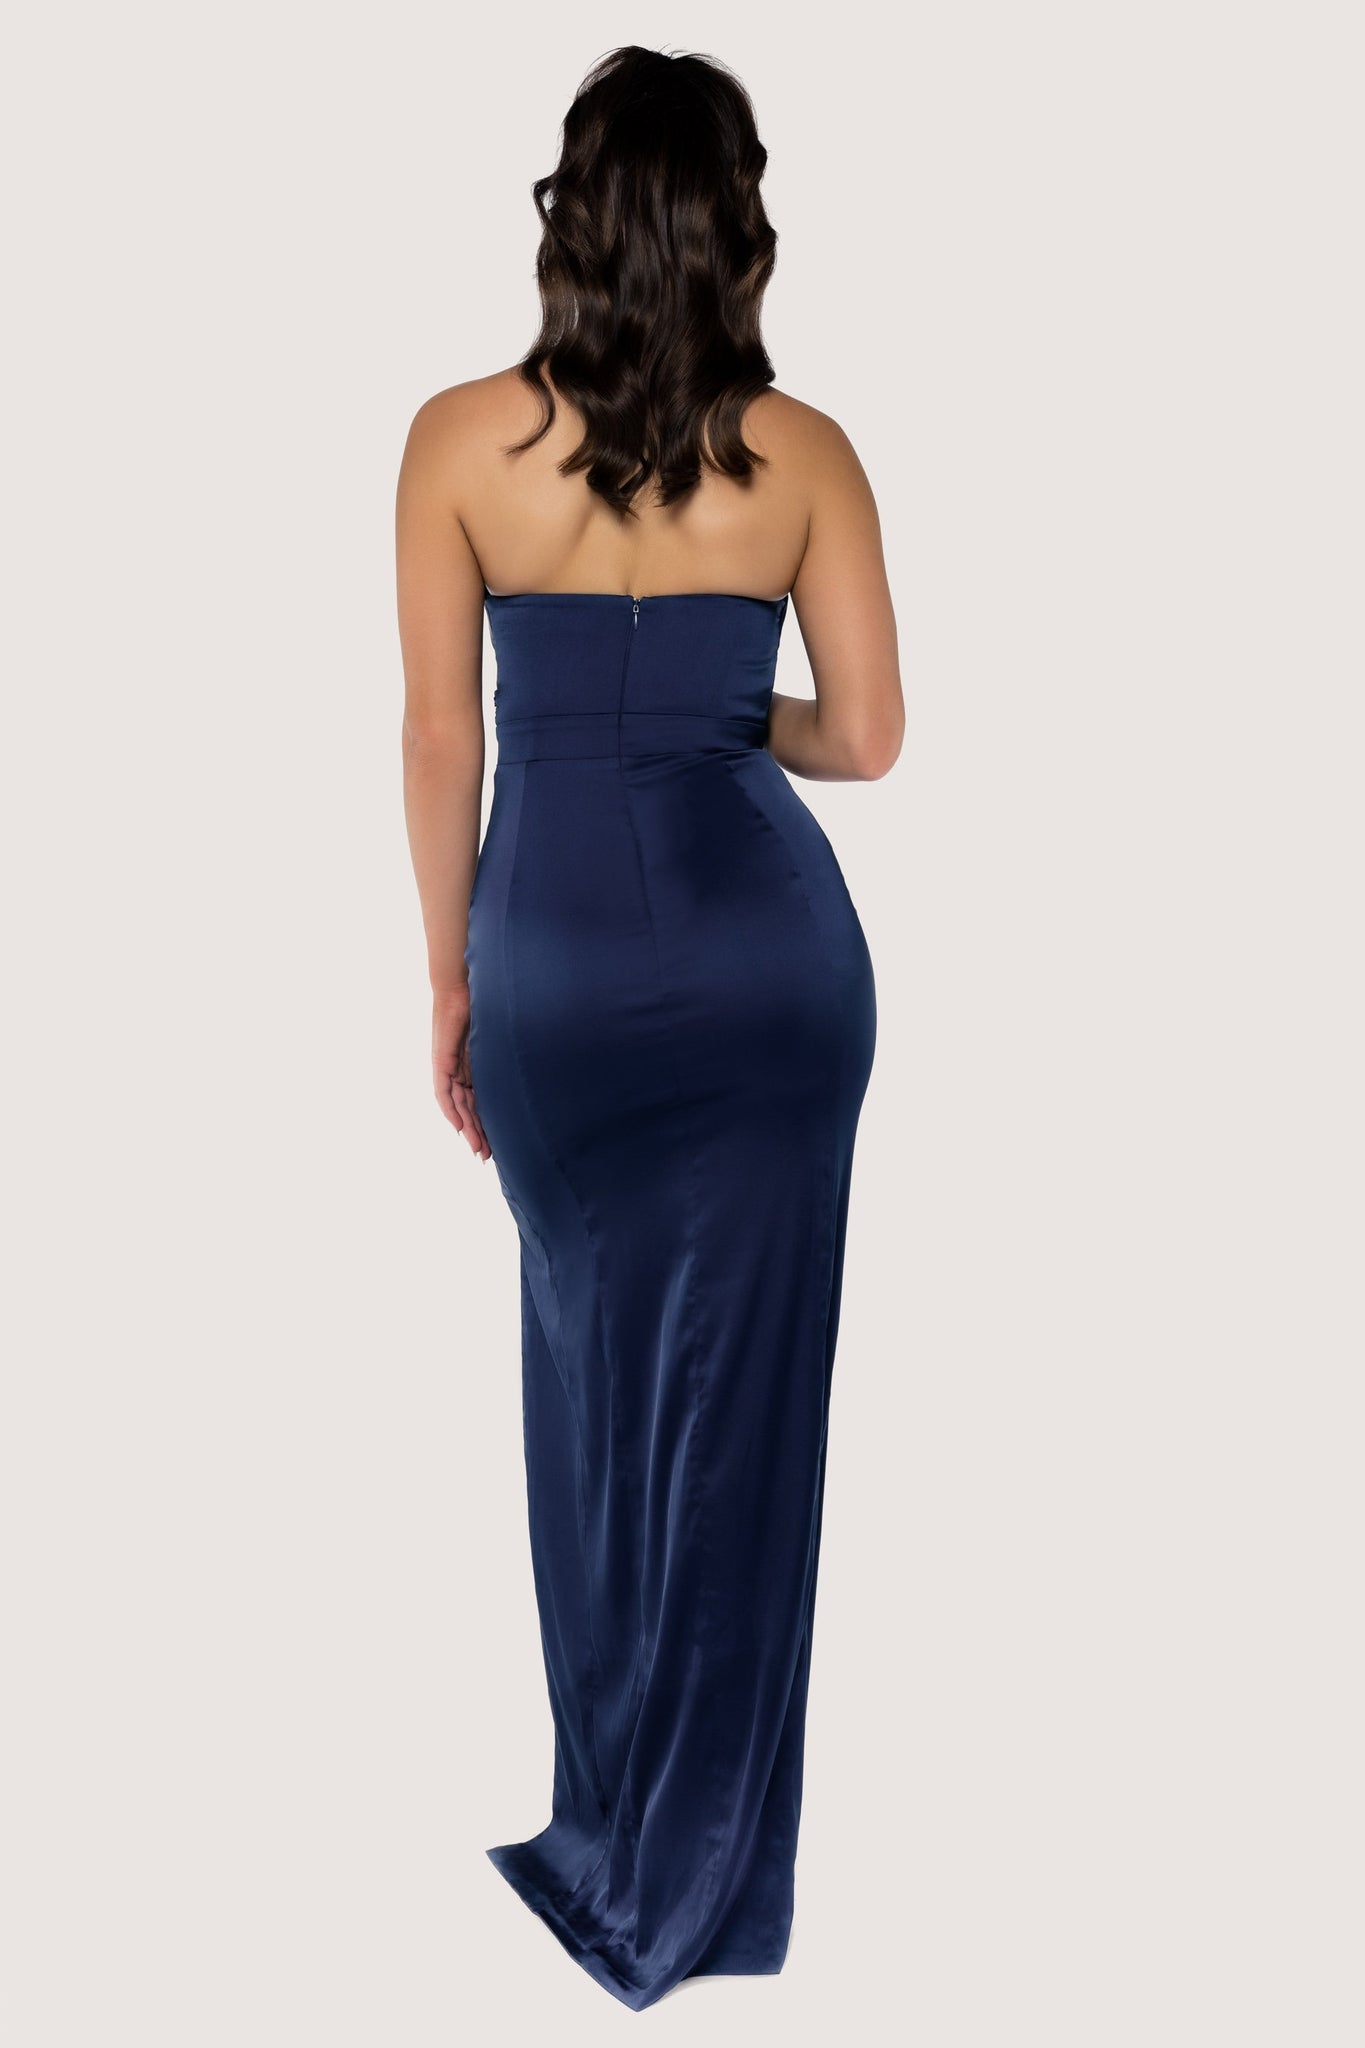 Jeannie Strapless Wrap Maxi Dress - Navy - MESHKI